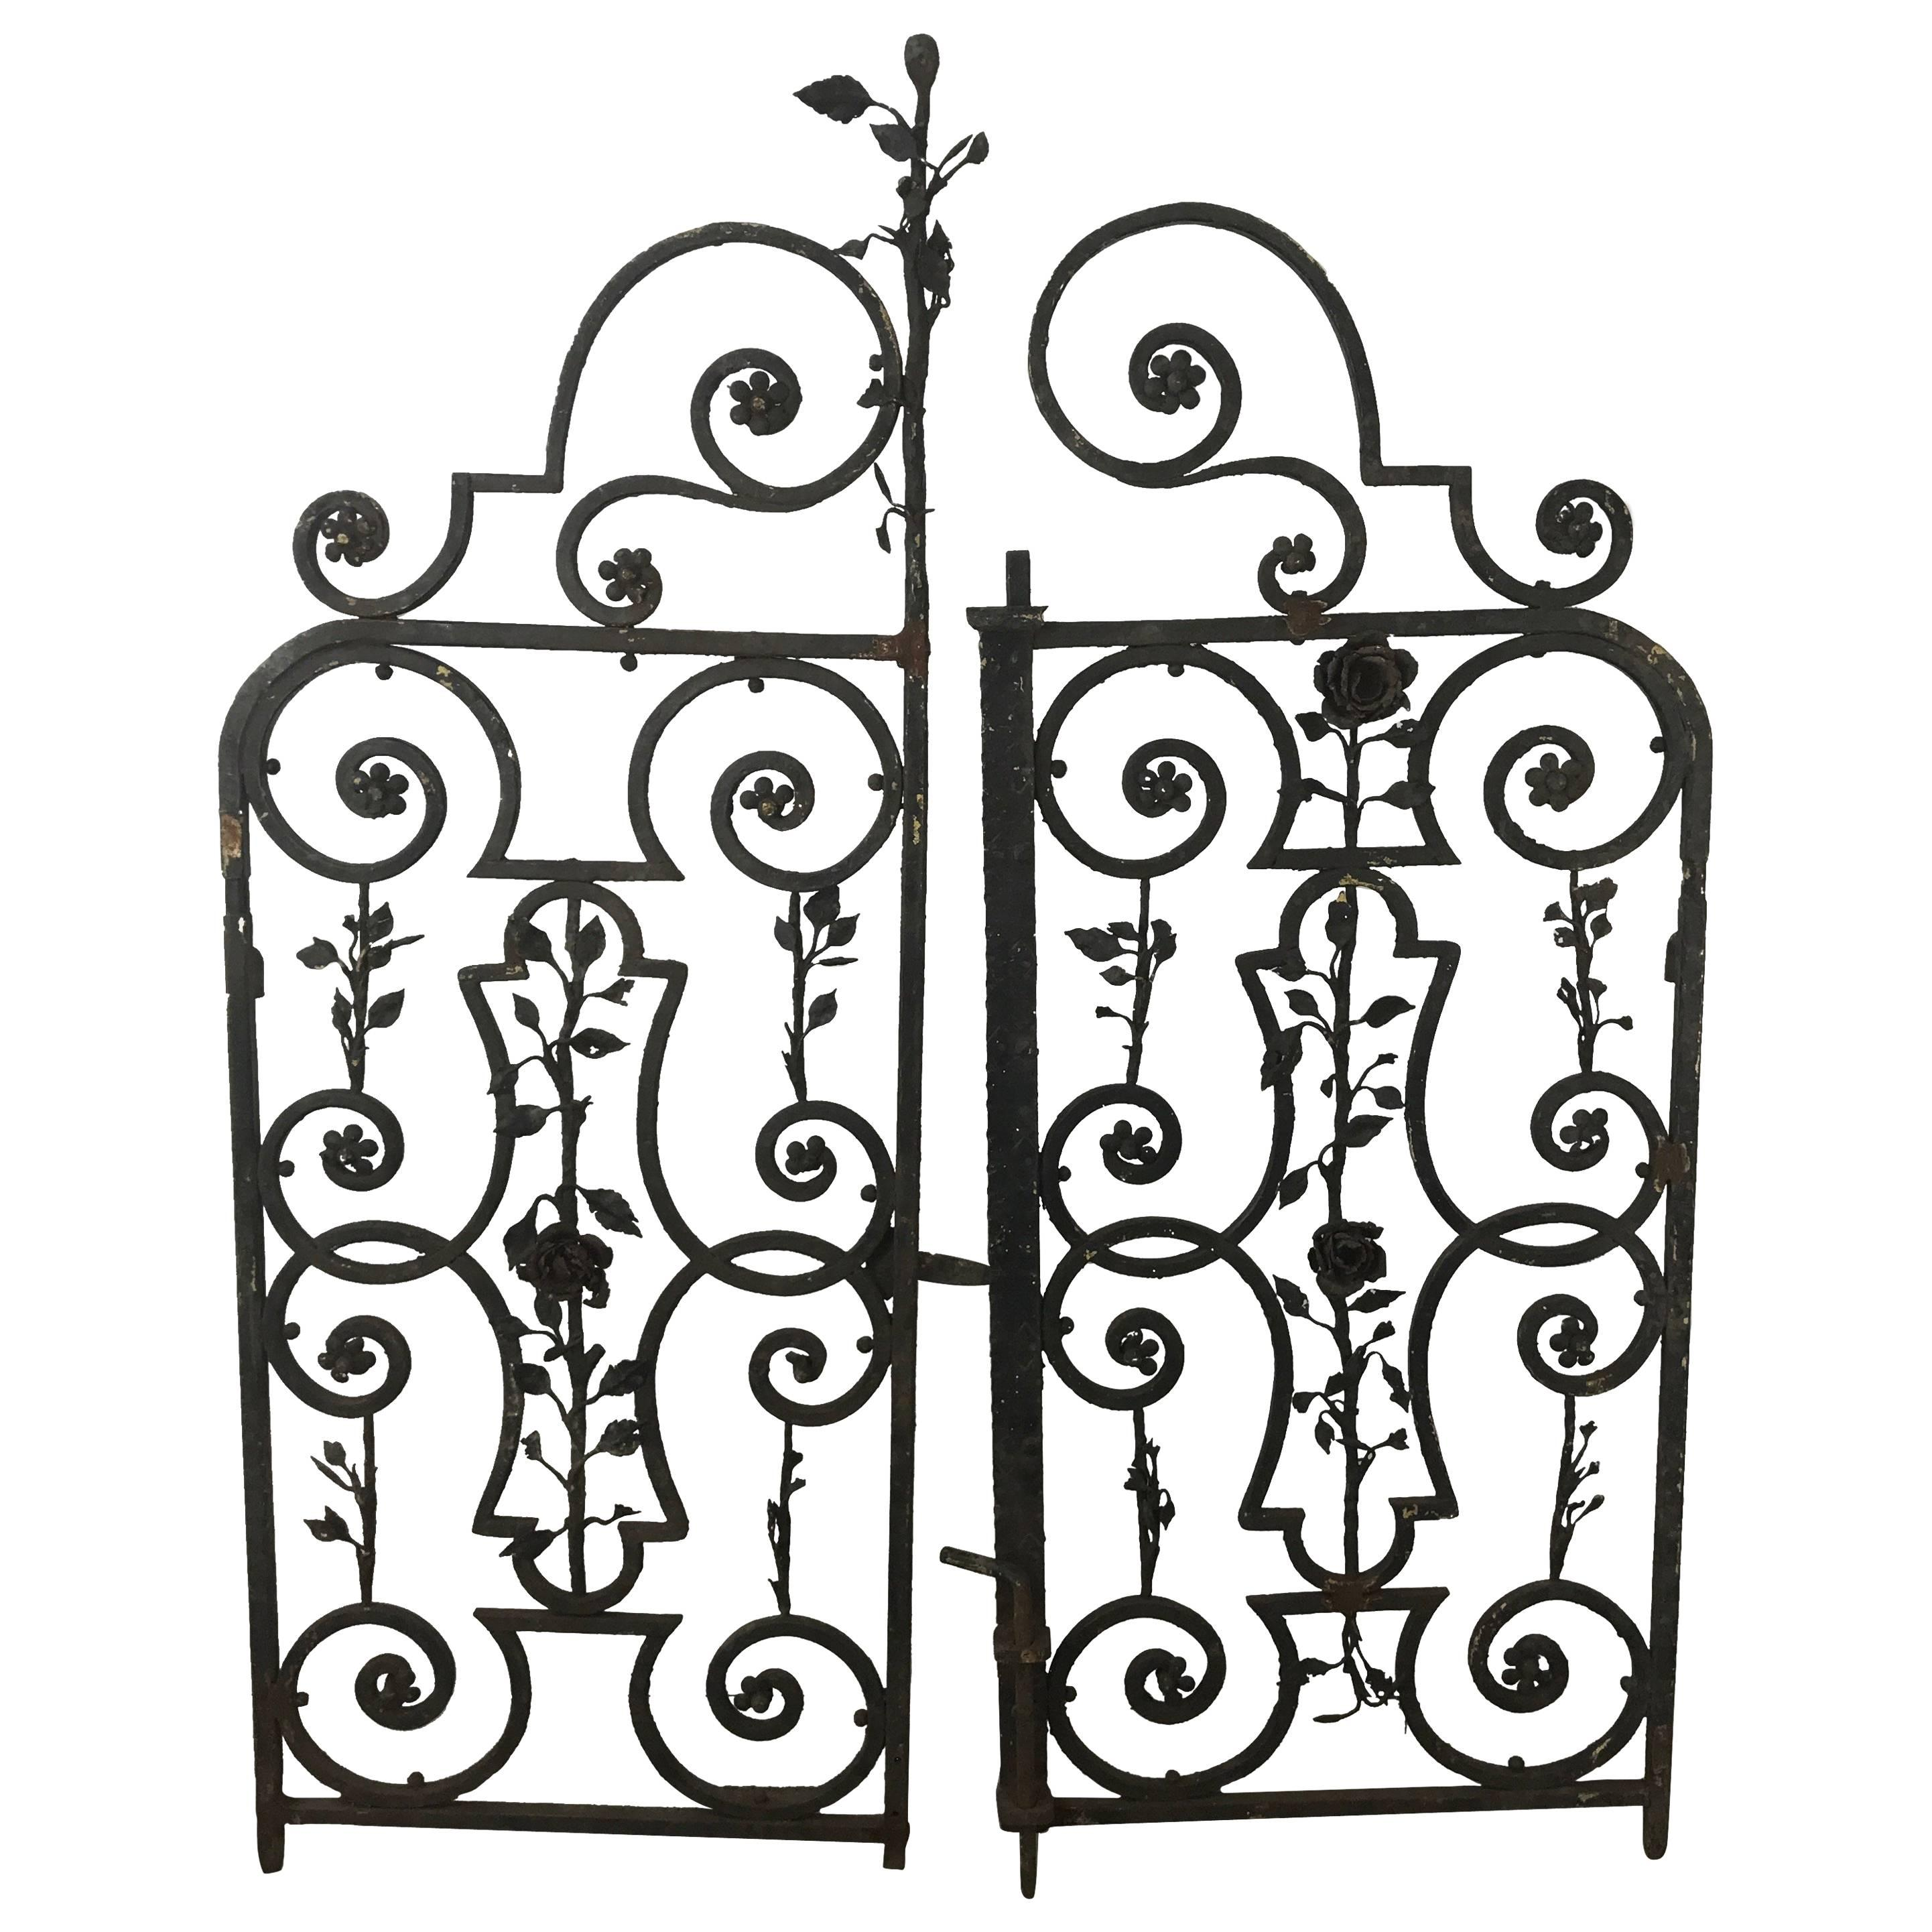 2883x2883 Decorative French Beaux Arts Wrought Iron Garden Gate For Sale